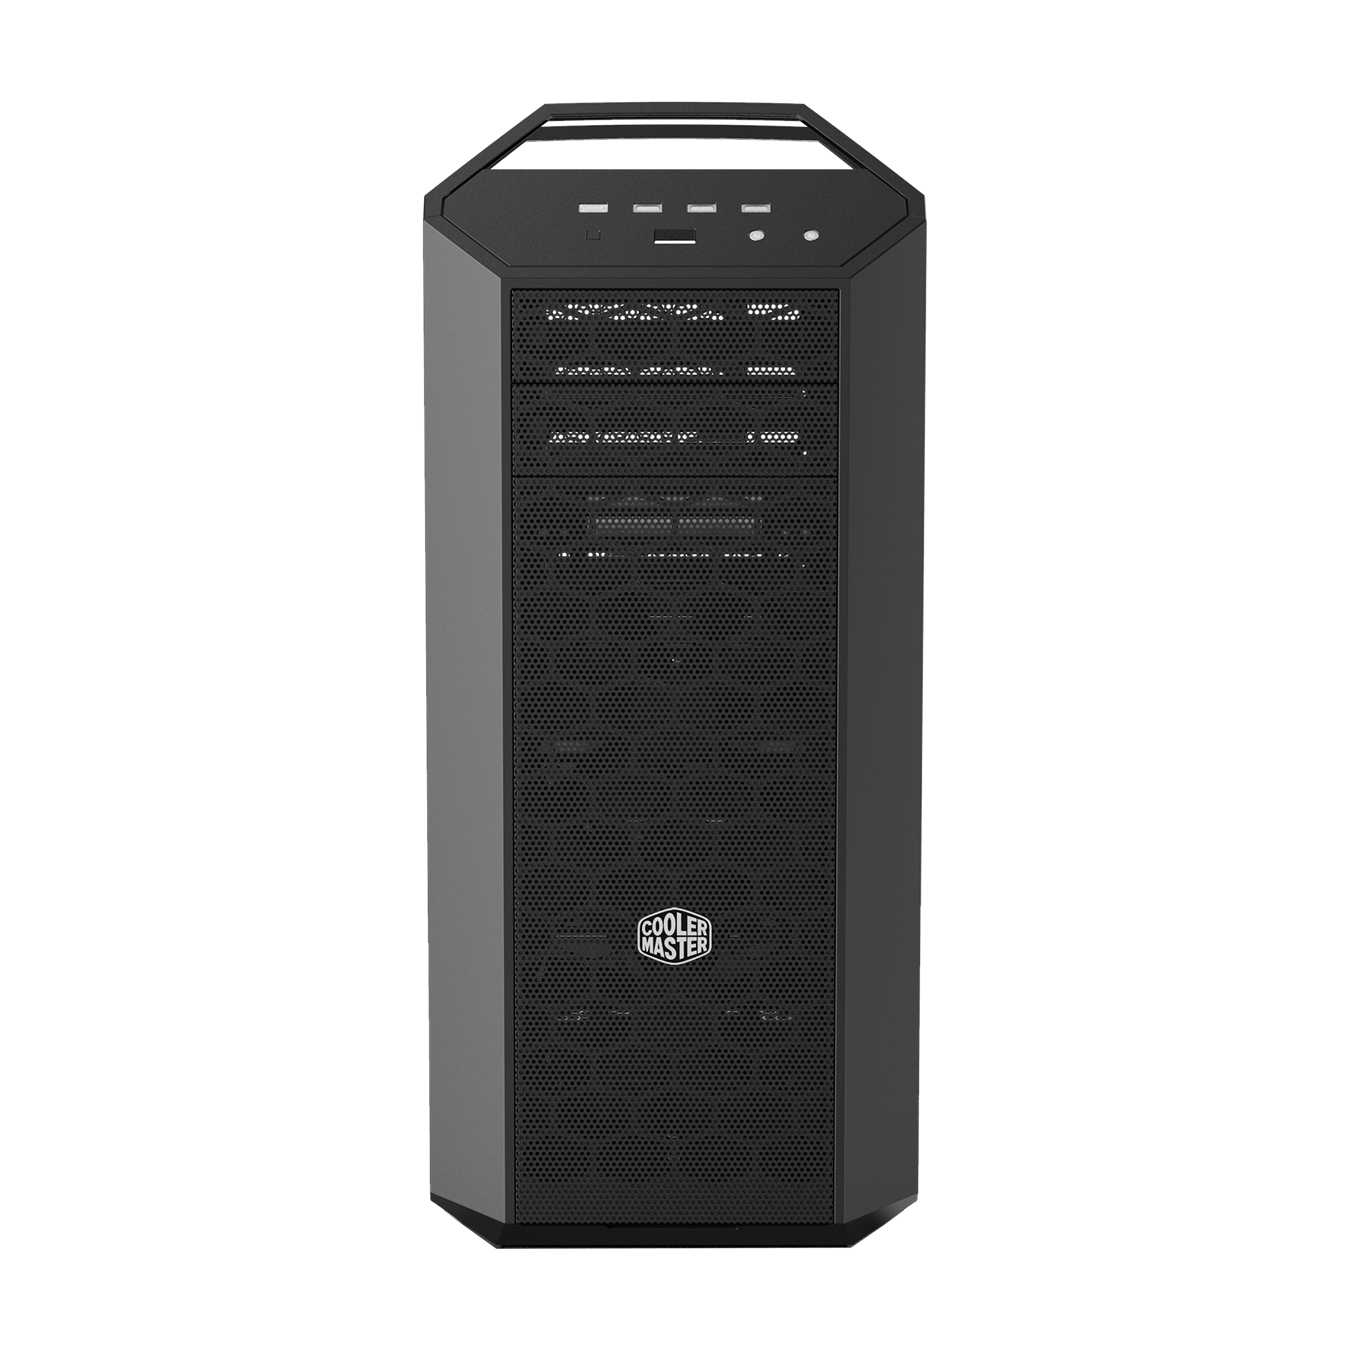 MasterCase MC500 High Storage Edition comes with 2x 140mm fans pre-installed in front of the drive cages, behind a sturdy and easy-to-remove dust filter.